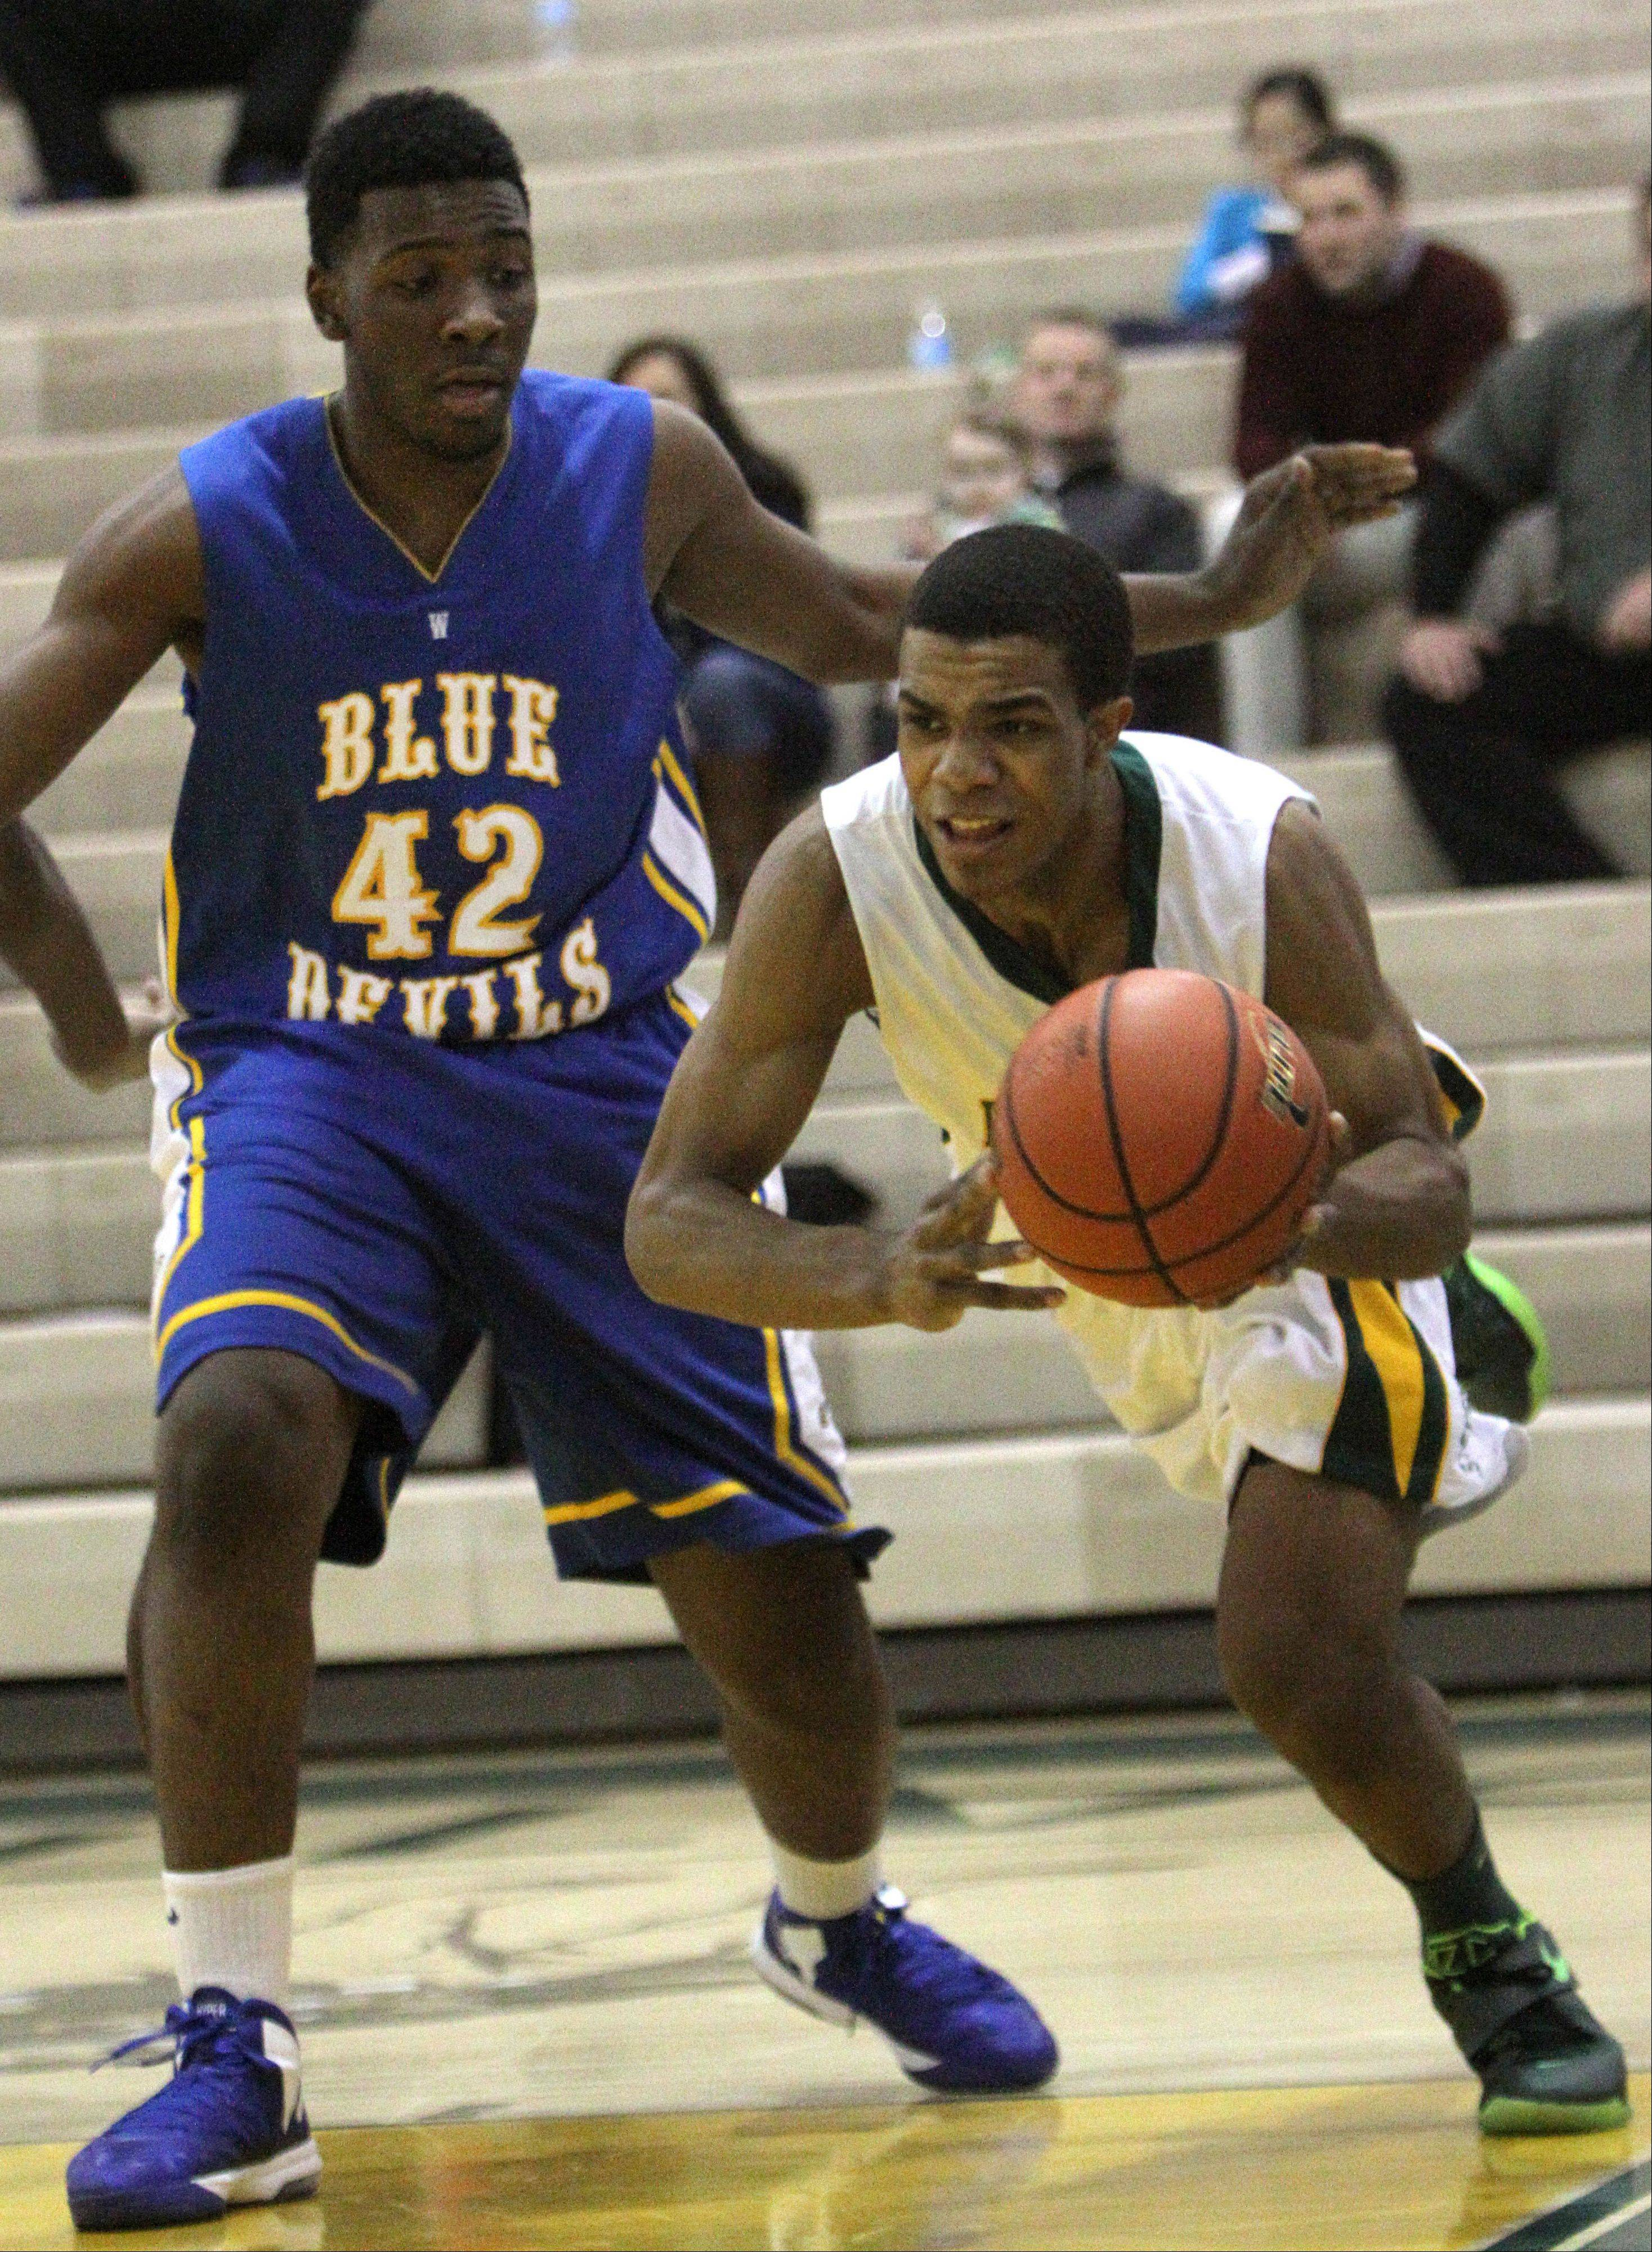 Stevenson's Connor Cashaw, right, drives on Warren's Dre Von Hill on Tuesday night at Stevenson.